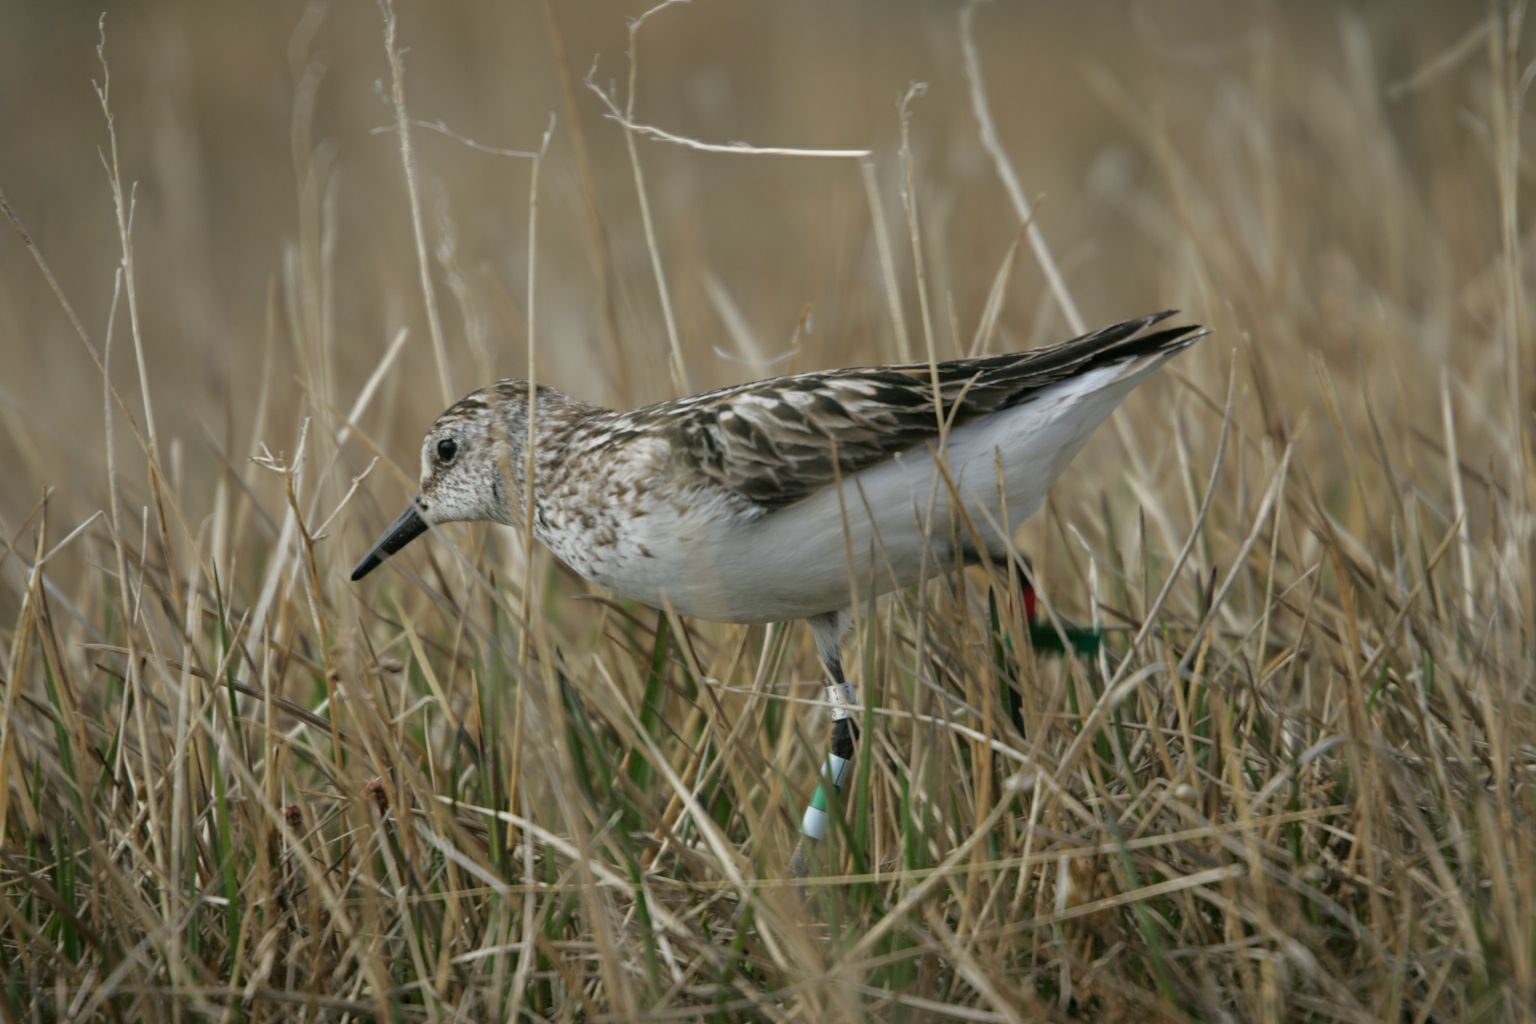 Semipalmated sandpipers breeding in Alaska have completely different mating systems and corresponding sleep cycles. Credit: Bart Kempenaers, Max Planck Institute of Ornithology